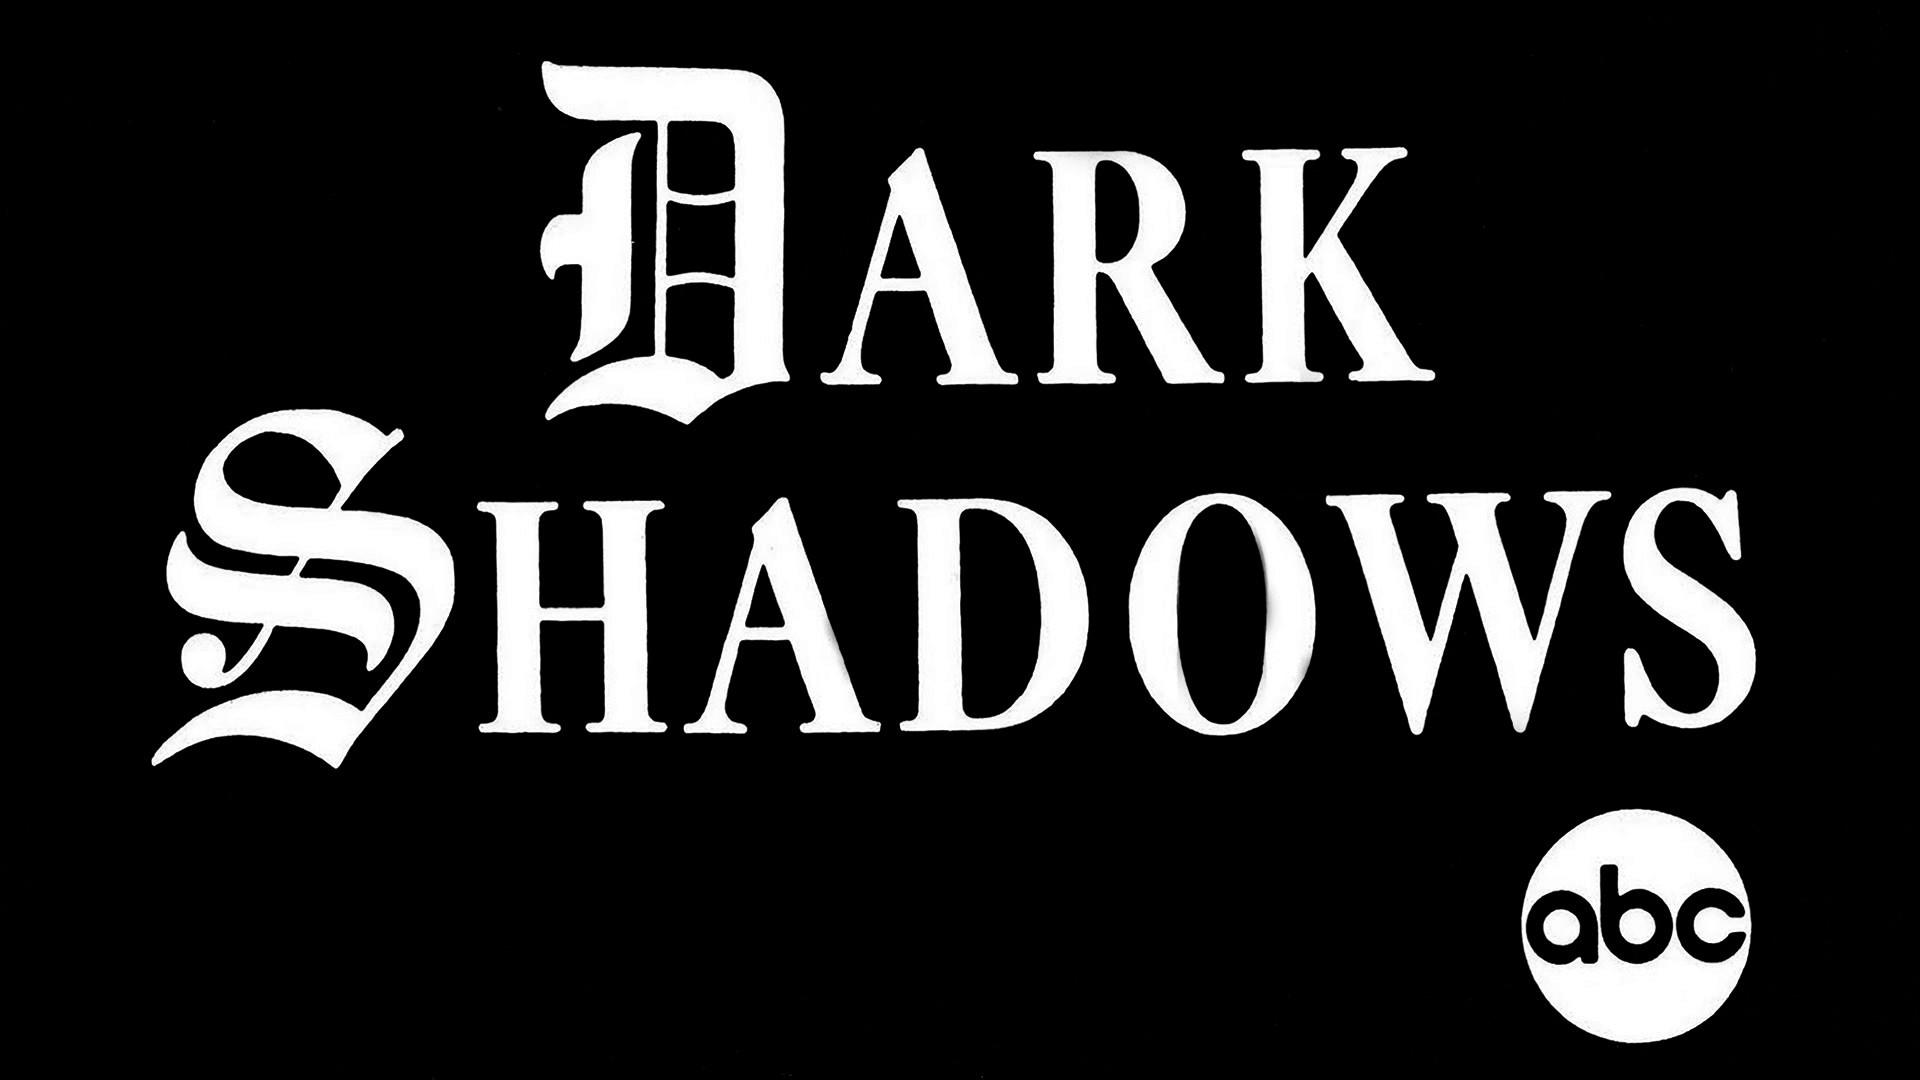 dark-shadows-logo-1.jpg